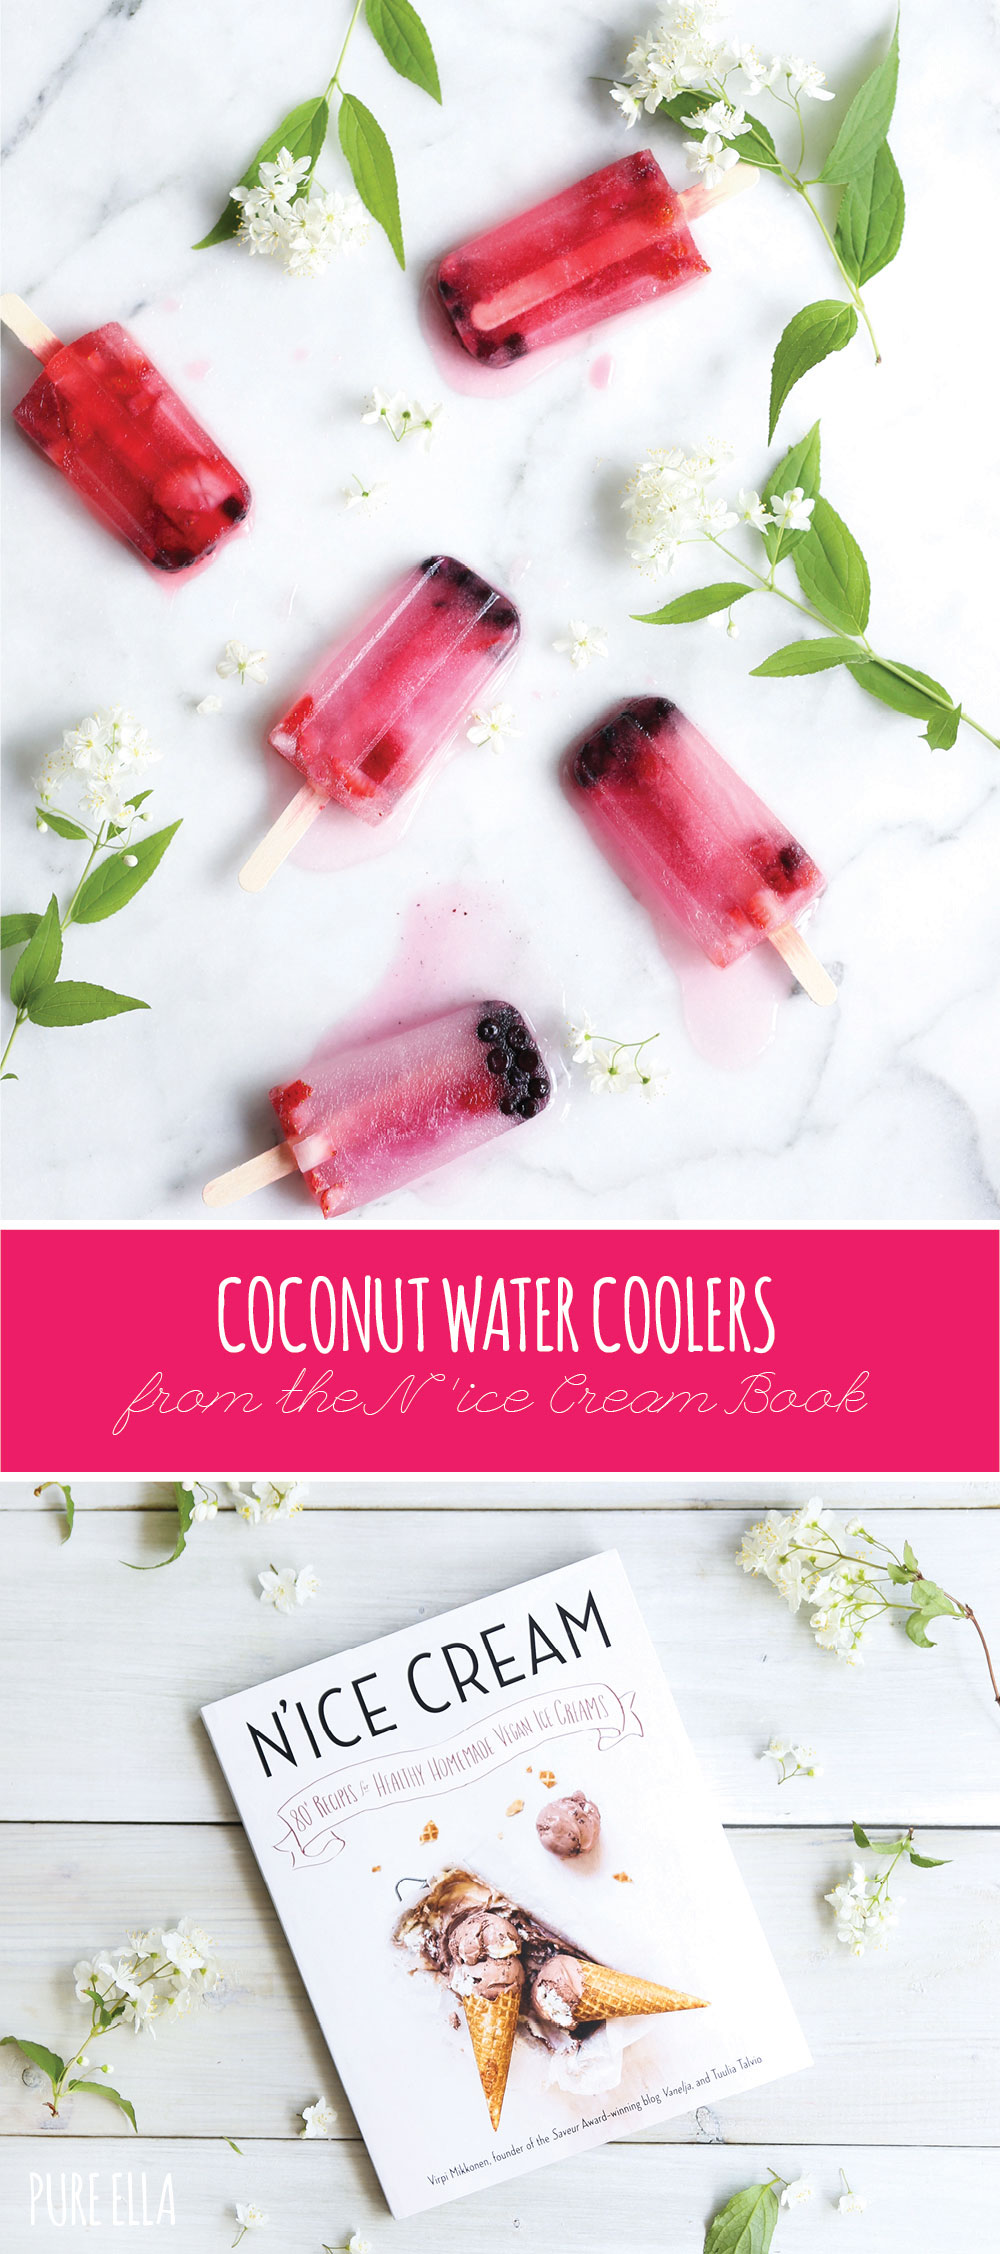 Ella-Leche-Pure-Ella-Nice-Cream-Book-Coconut-Water-Coolers10